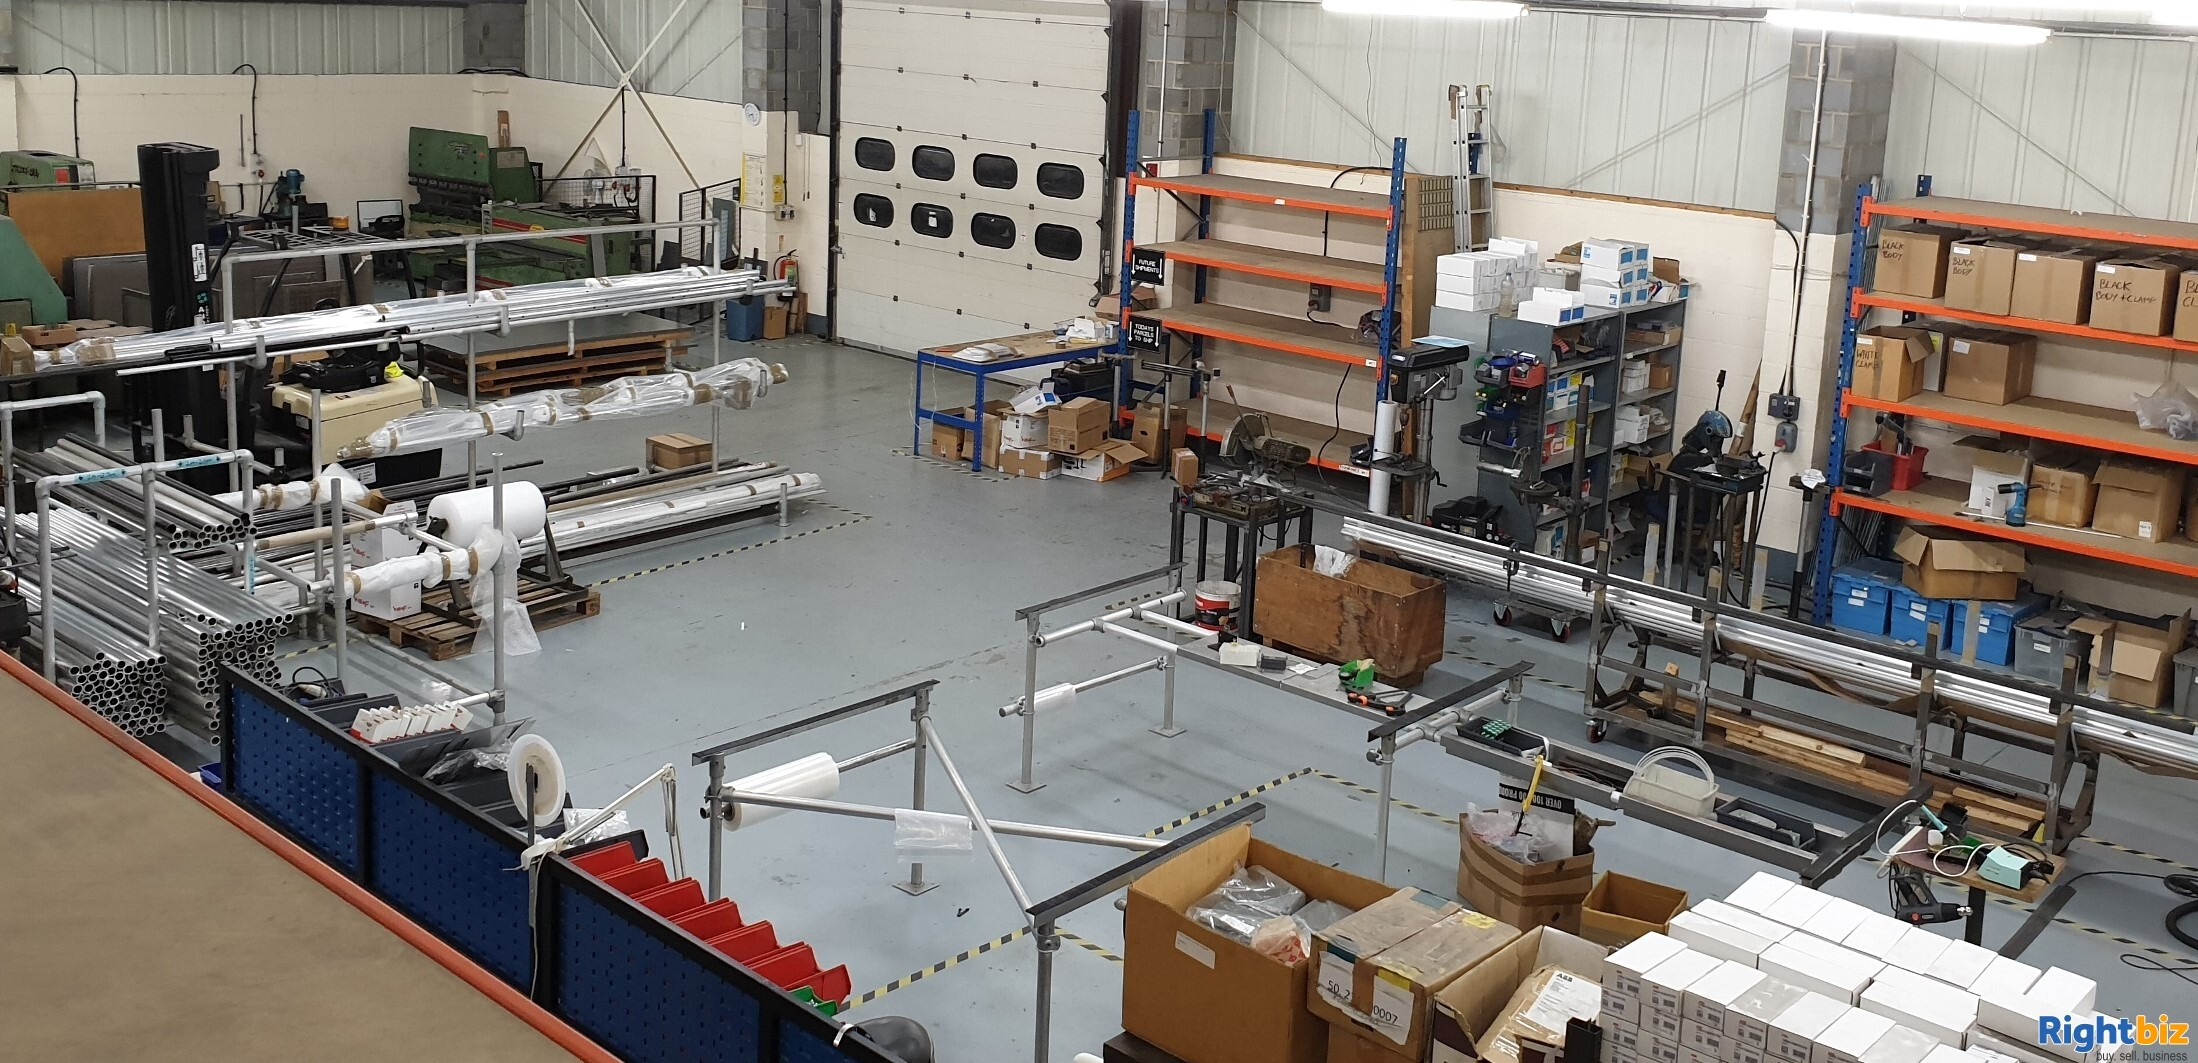 Lighting and Sound Manufacturer with ISO9001. South UK - Image 4